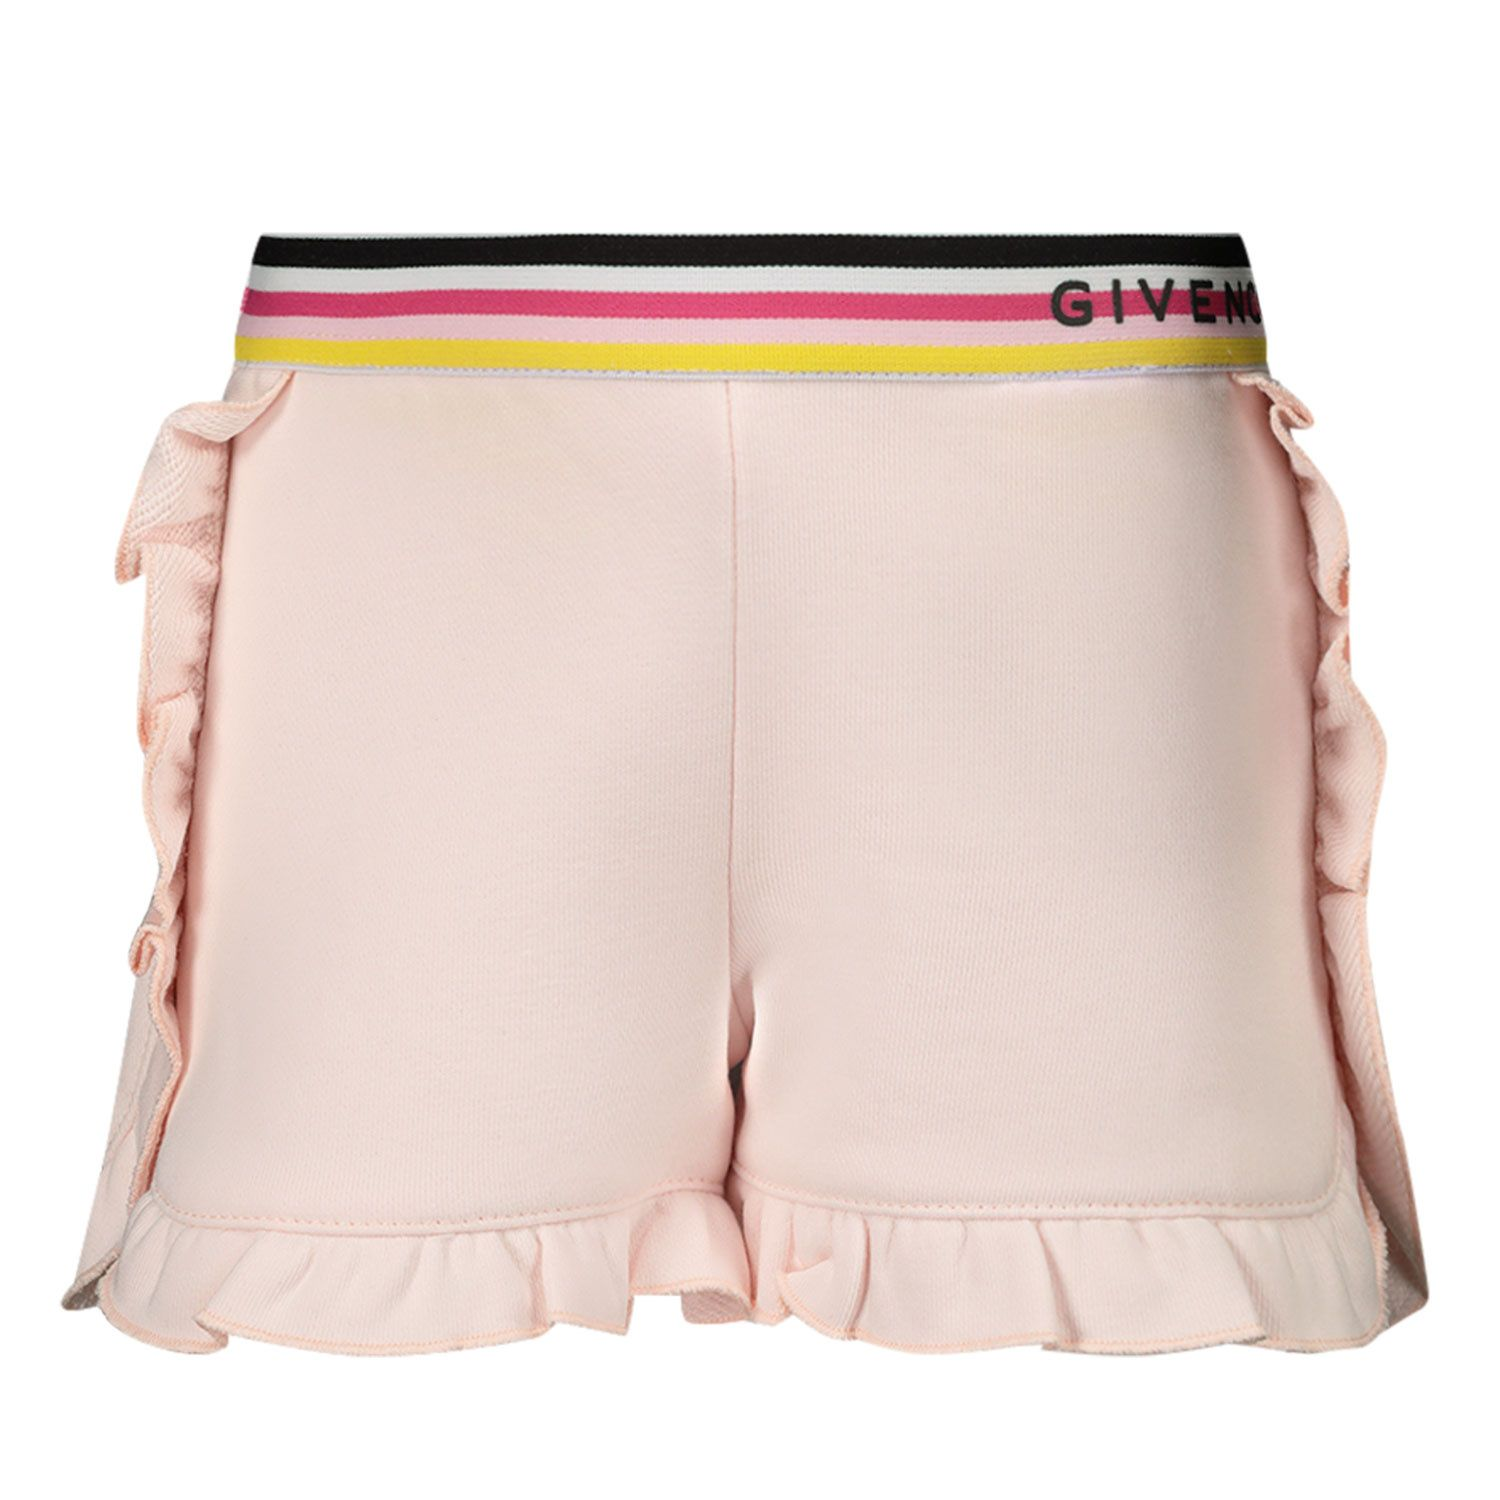 Picture of Givenchy H04101 baby shorts light pink